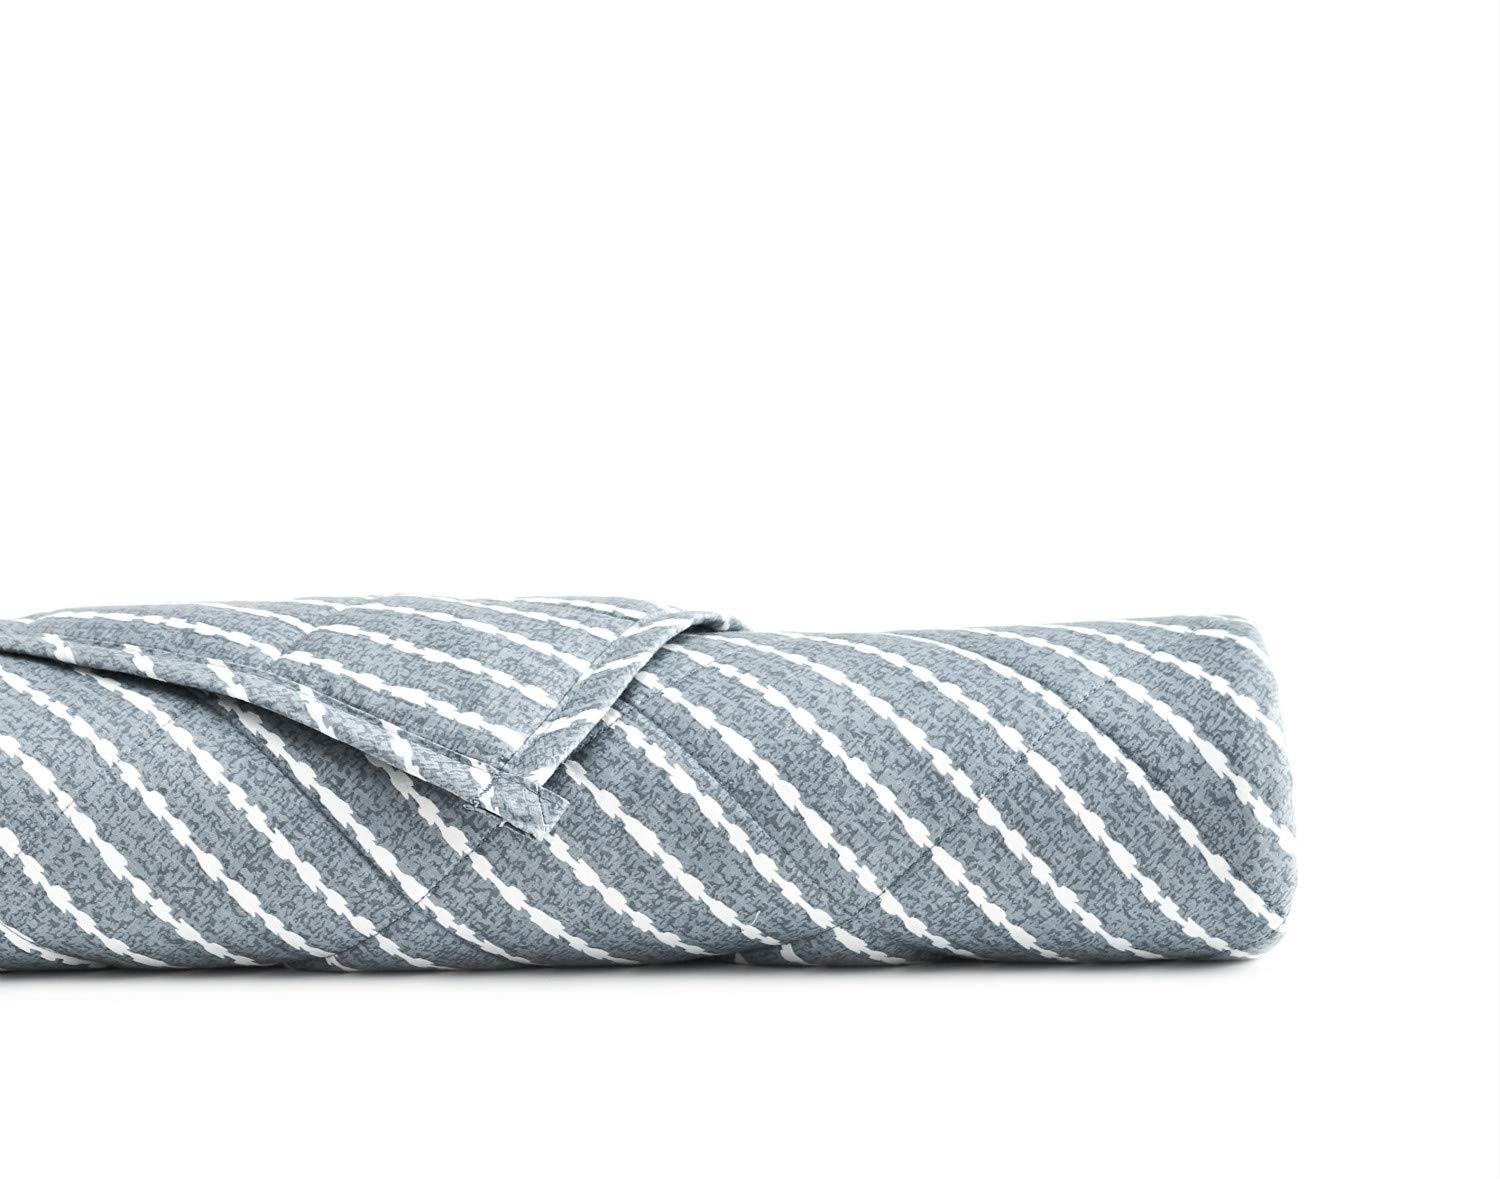 YnM Weighted Blanket (15 lbs, 48''x72'', Twin Size) | 3.0 Heavy Blanket | 100% Cotton Material with Glass Beads ...